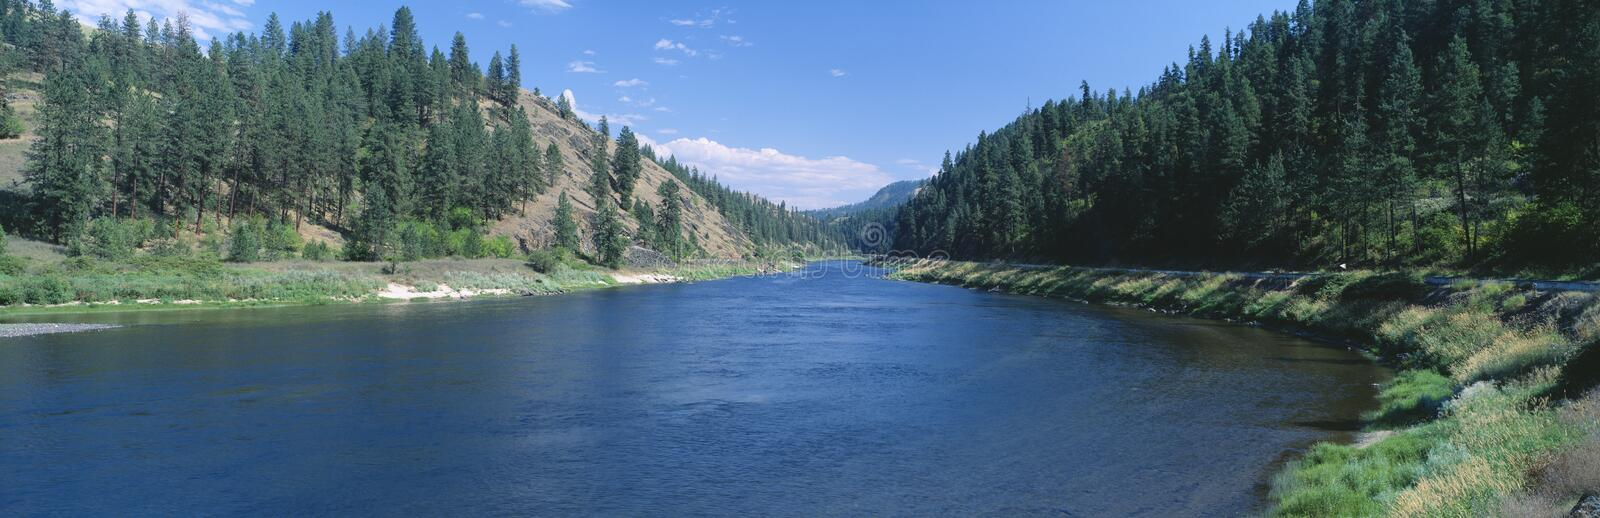 Clearwater River. Lewis and Clark 1805 expedition route, Idaho royalty free stock photography